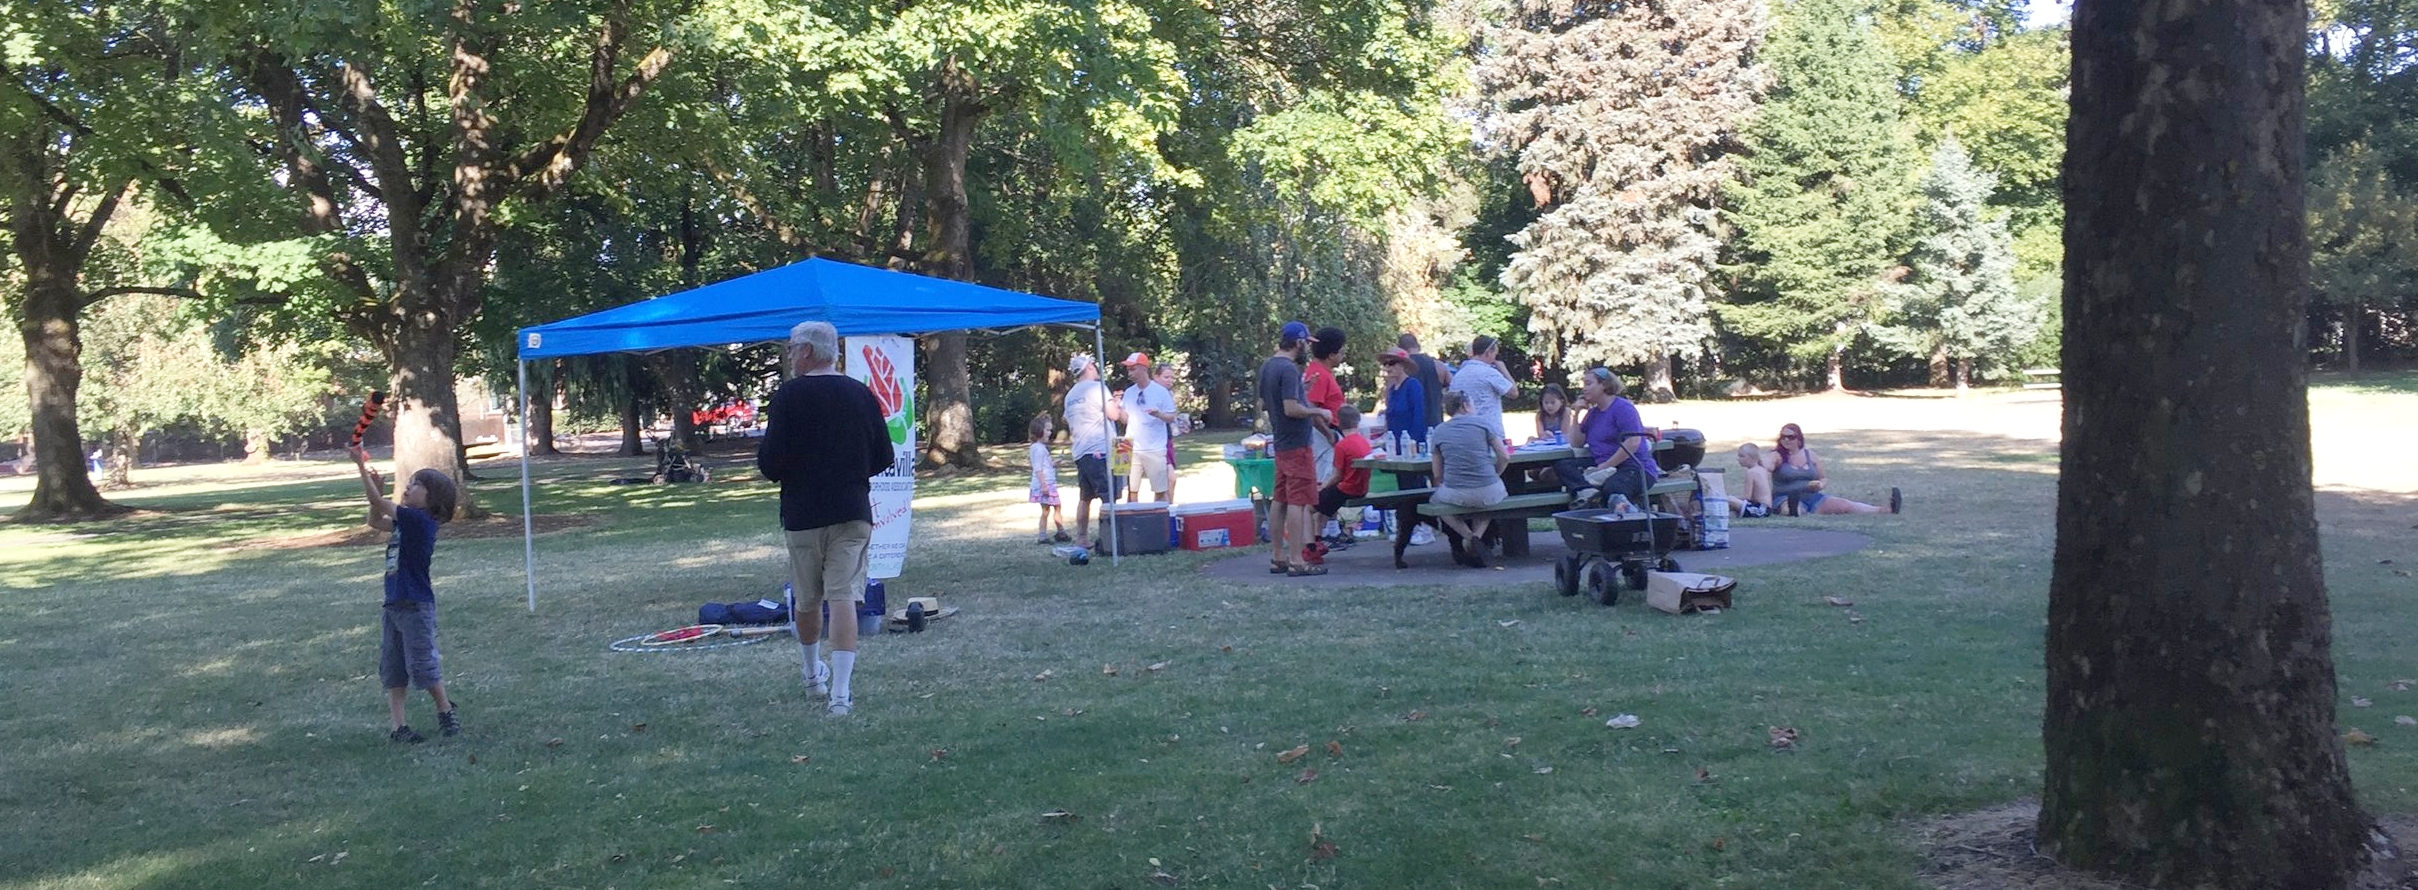 MNA Outreach and Communications Committee hosted MNA's National Night Out picnic in August 2018.